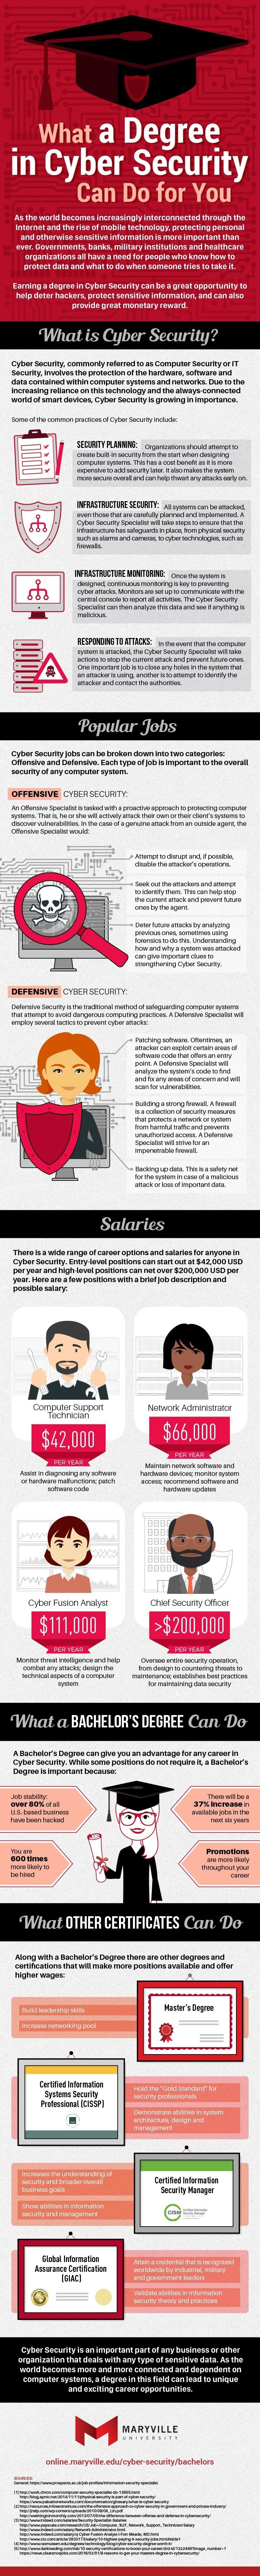 What a degree can you achieve in cyber security? #infographic